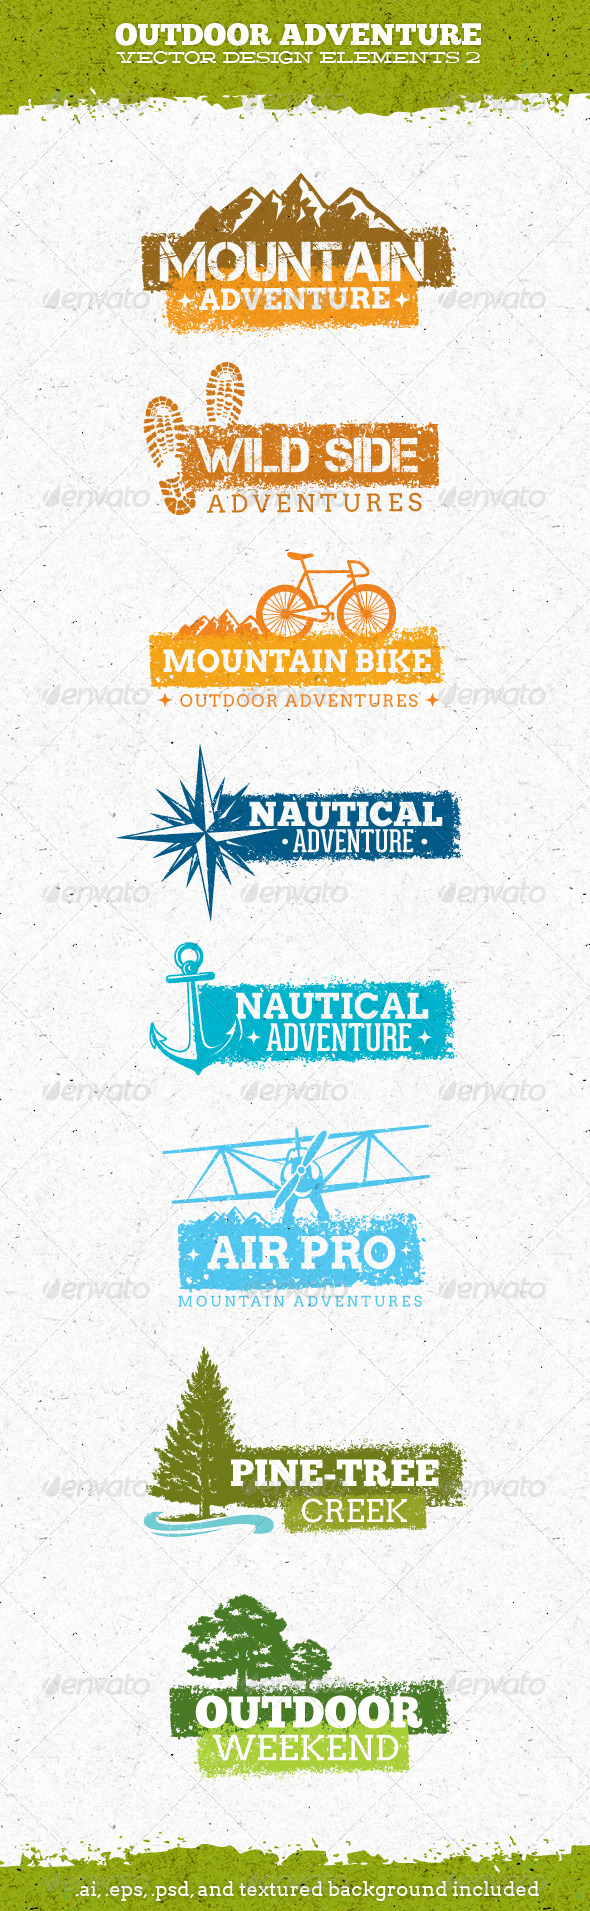 Outdoor Adventure Creative Vector Elements 2 - Sports/Activity Conceptual